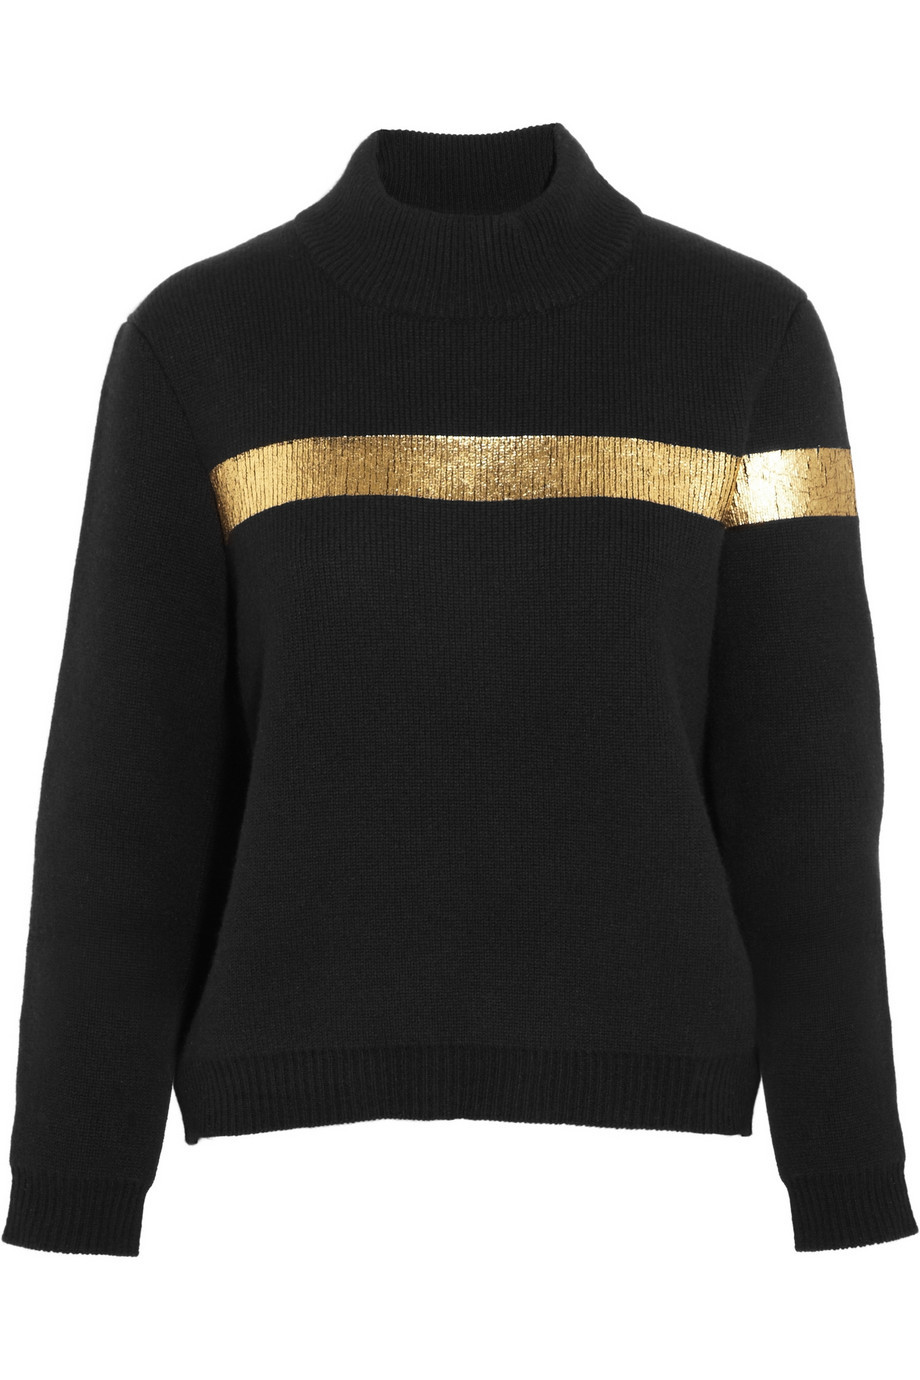 Jil Sander   Metallic printed cashmere-blend sweater   NET-A-PORTER.COM_files.jpg